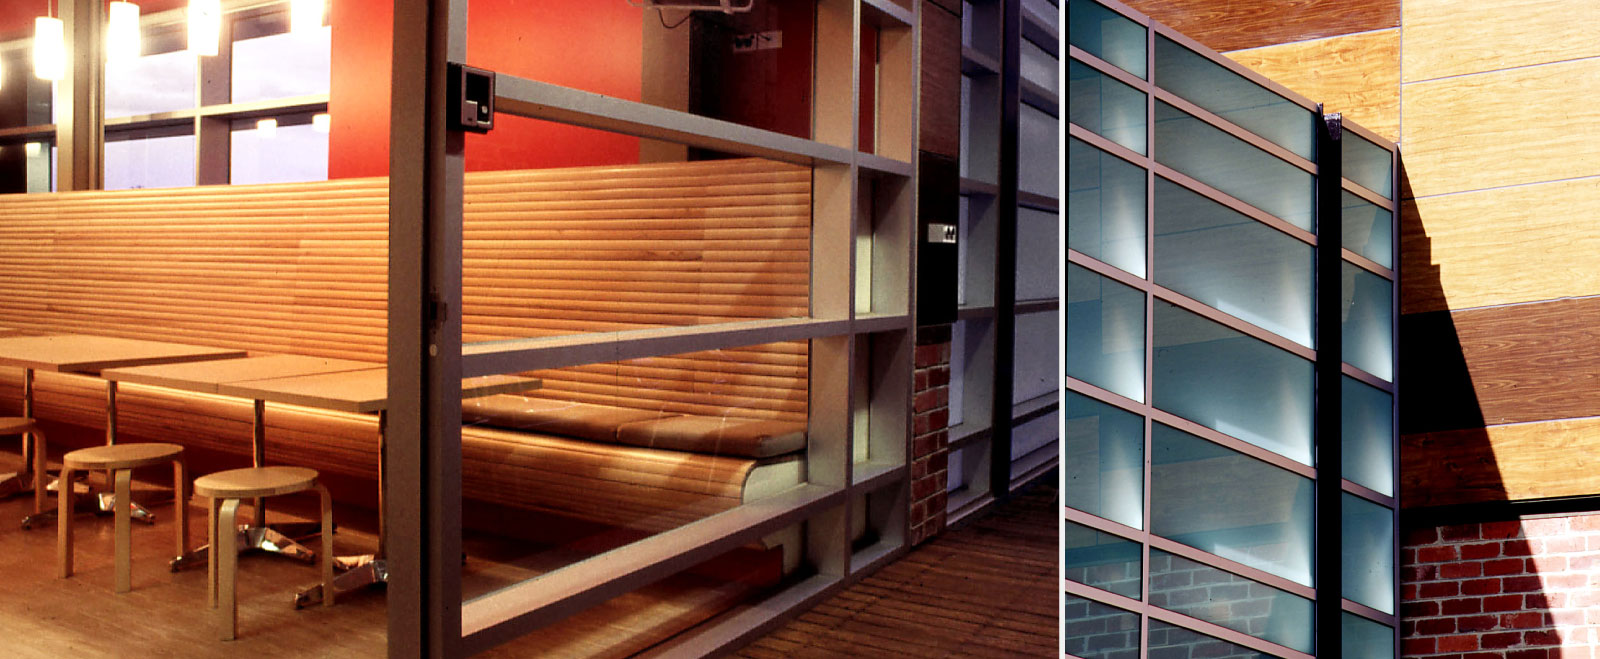 H2o-Architects-Melbourne-Australia-Post-Shared-Services-02